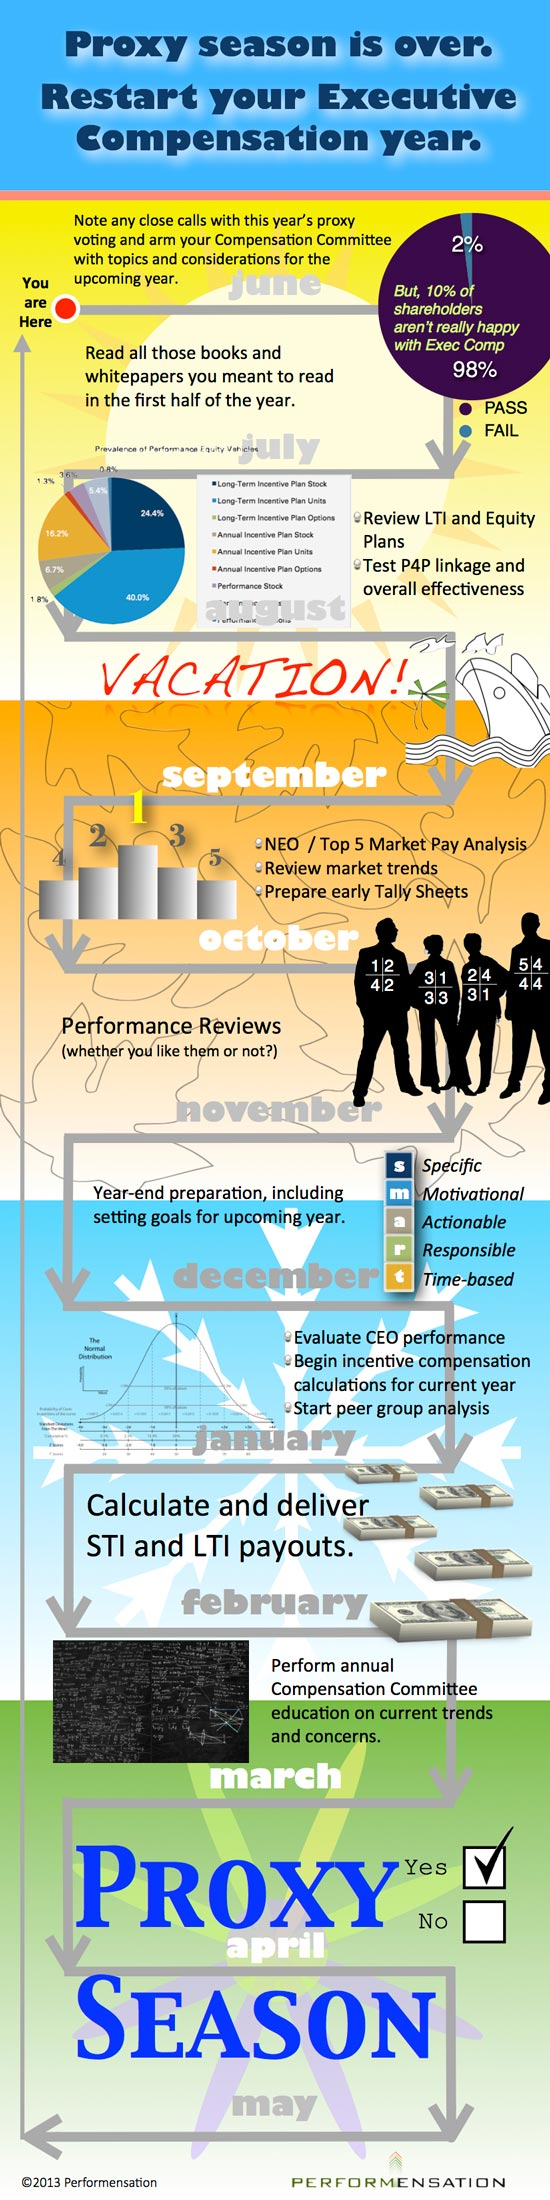 Executive-Pay-Calendar-Infographic